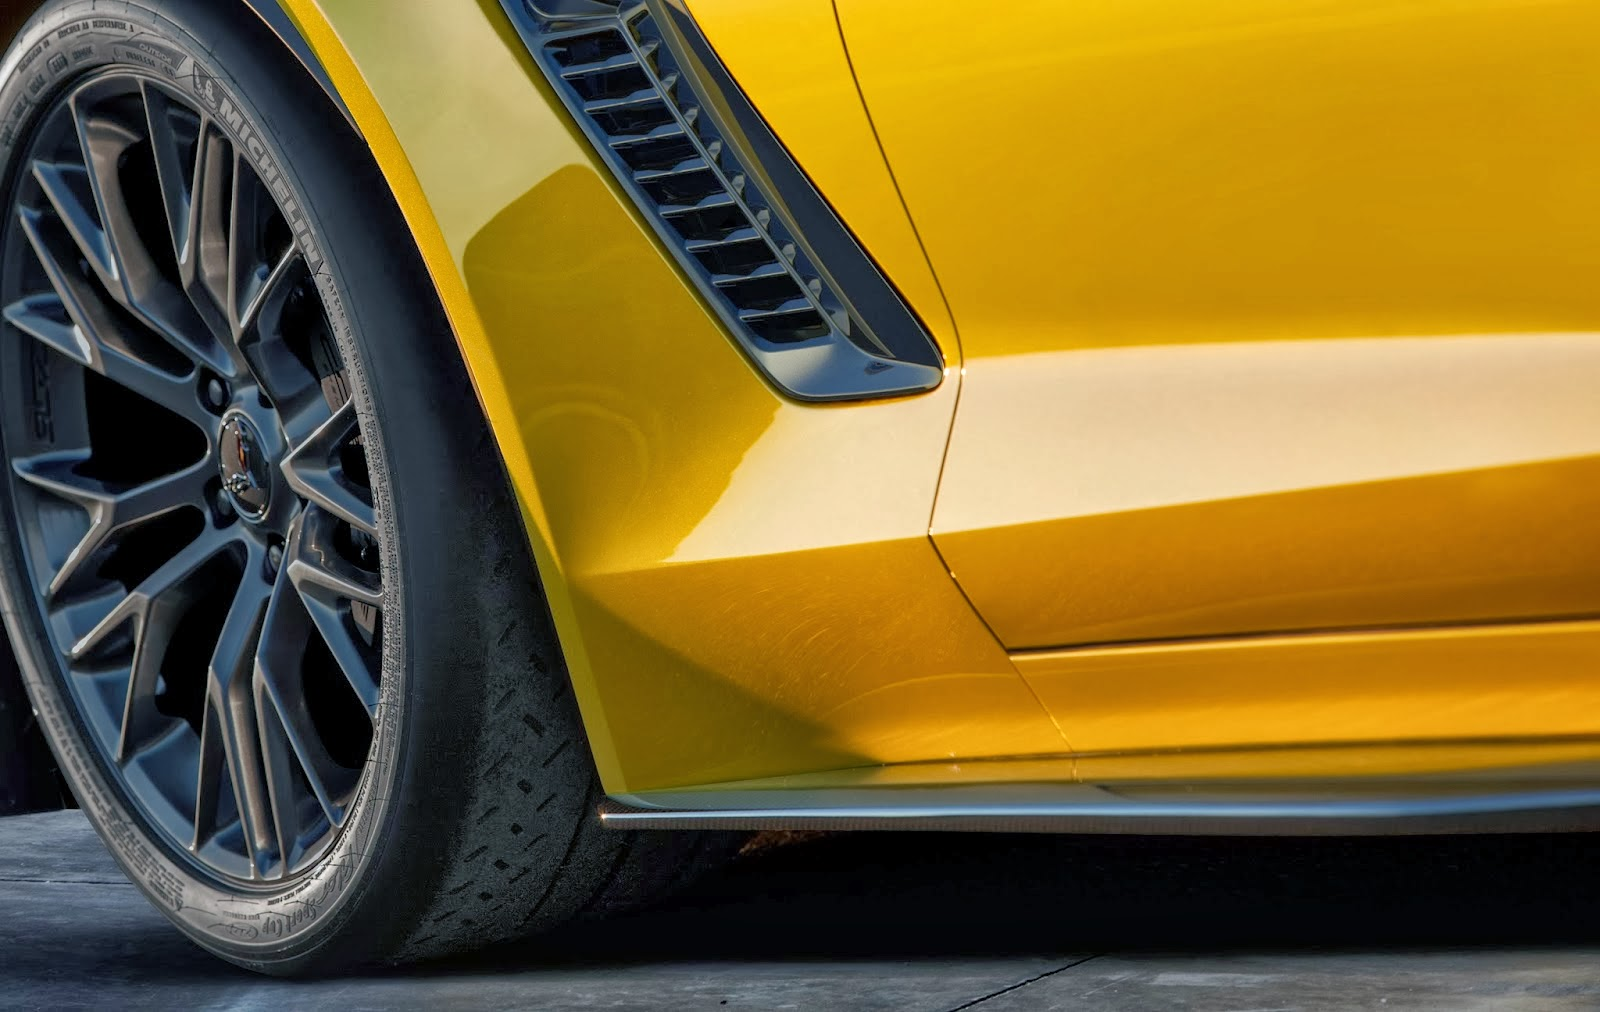 2015 Chevrolet Corvette Z06 Detroit Auto Show Debut